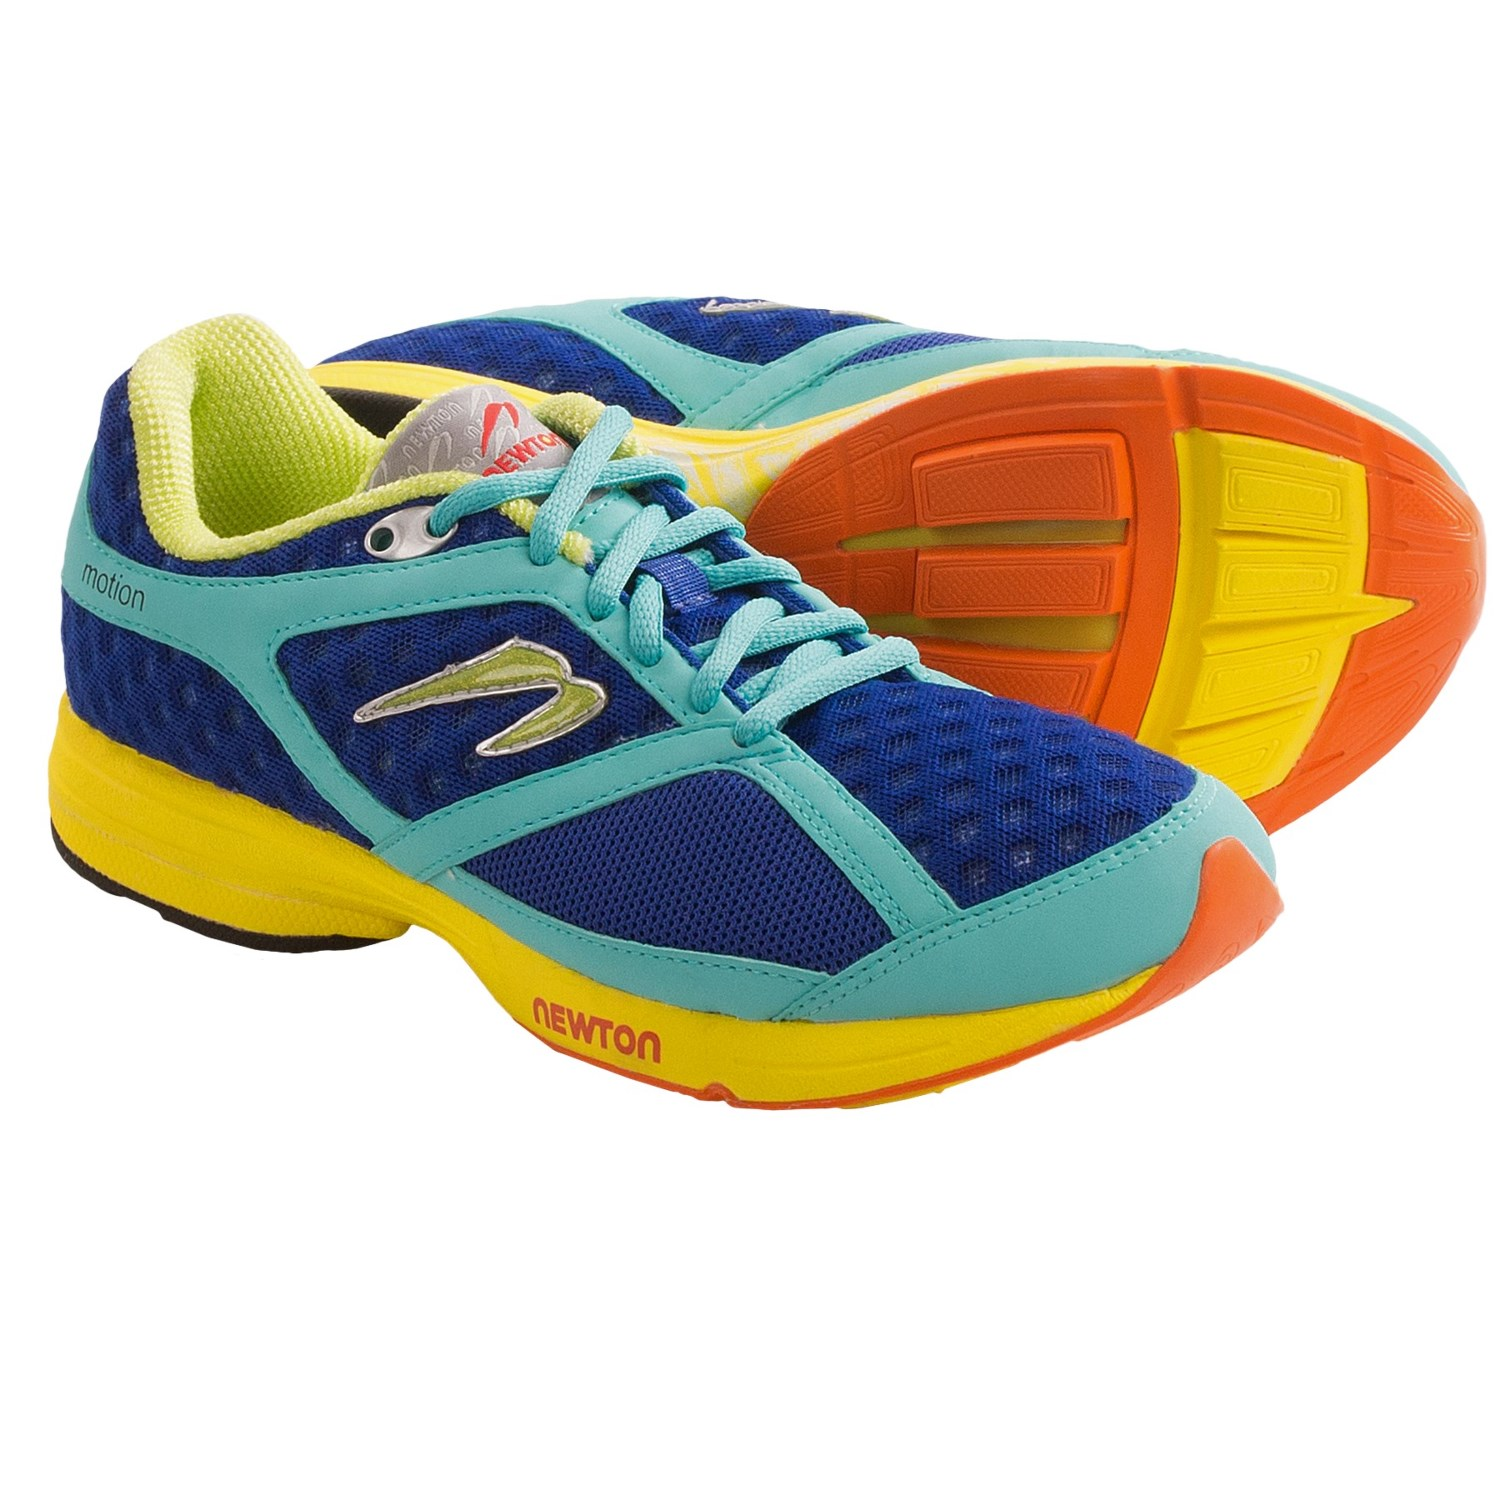 Wiggle | New Balance Women's 860v4 Shoes - AW14 | Stability